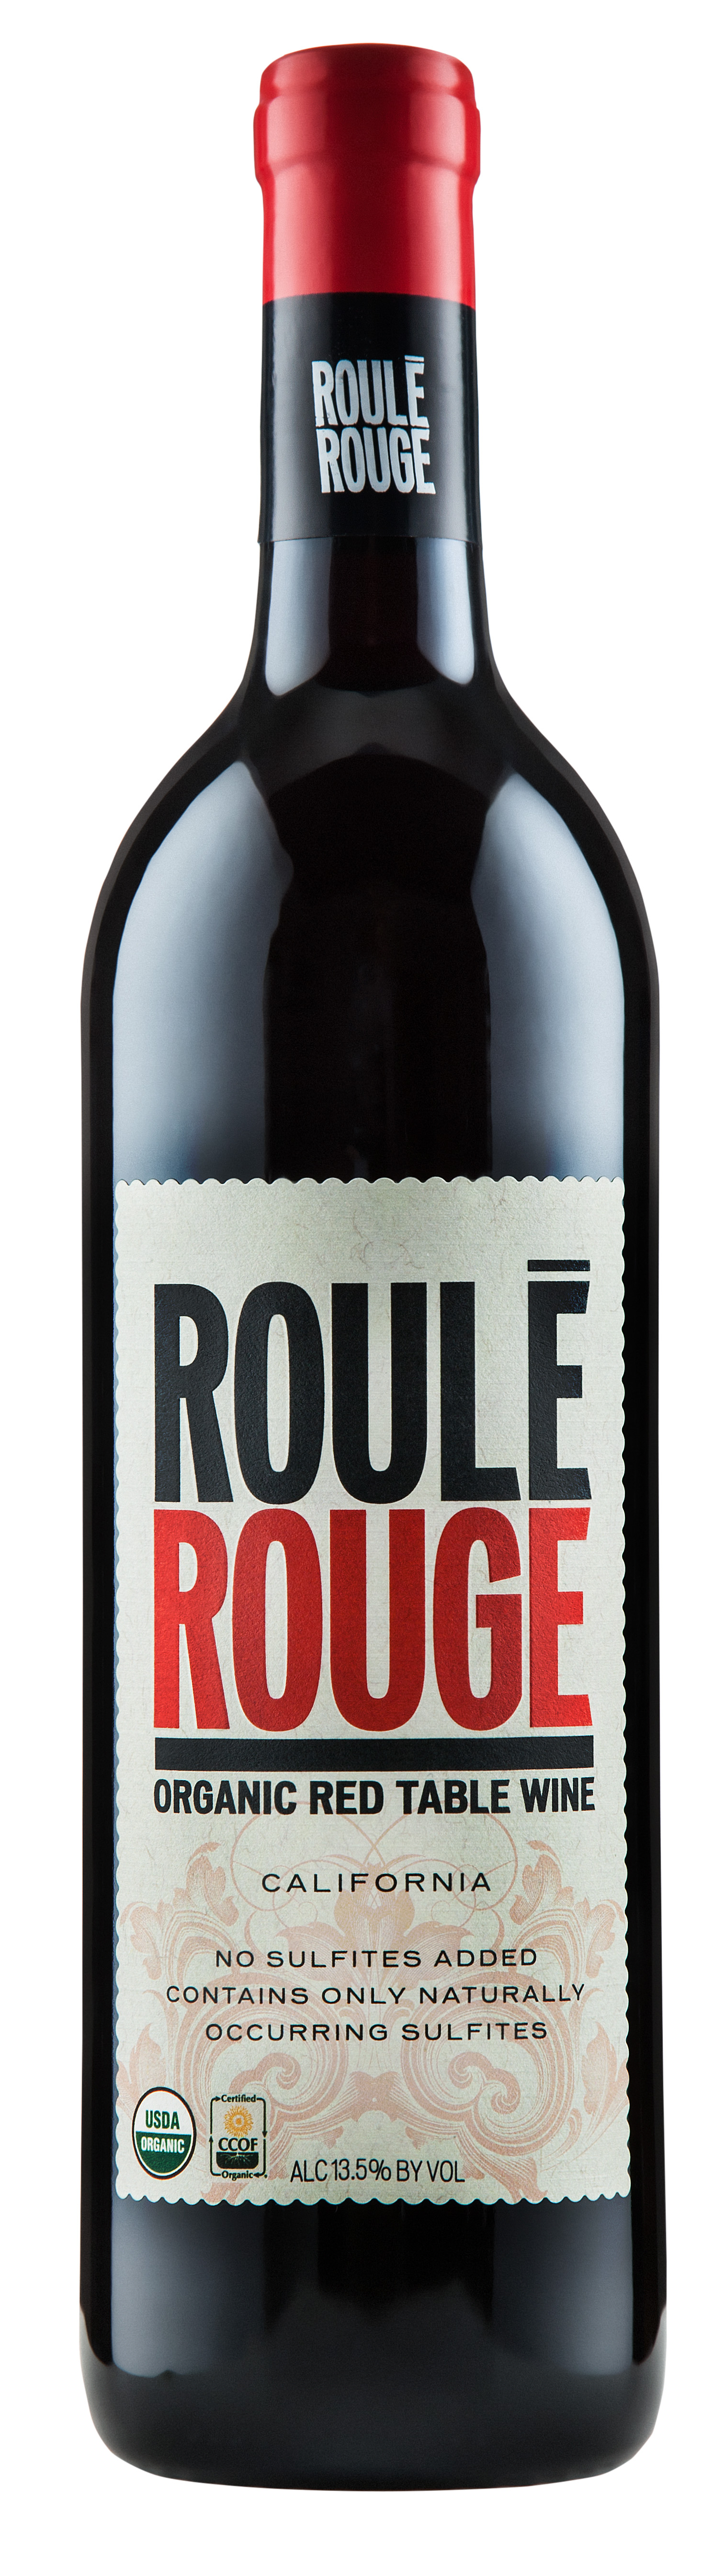 Roule Rouge Bottle Shot.jpg